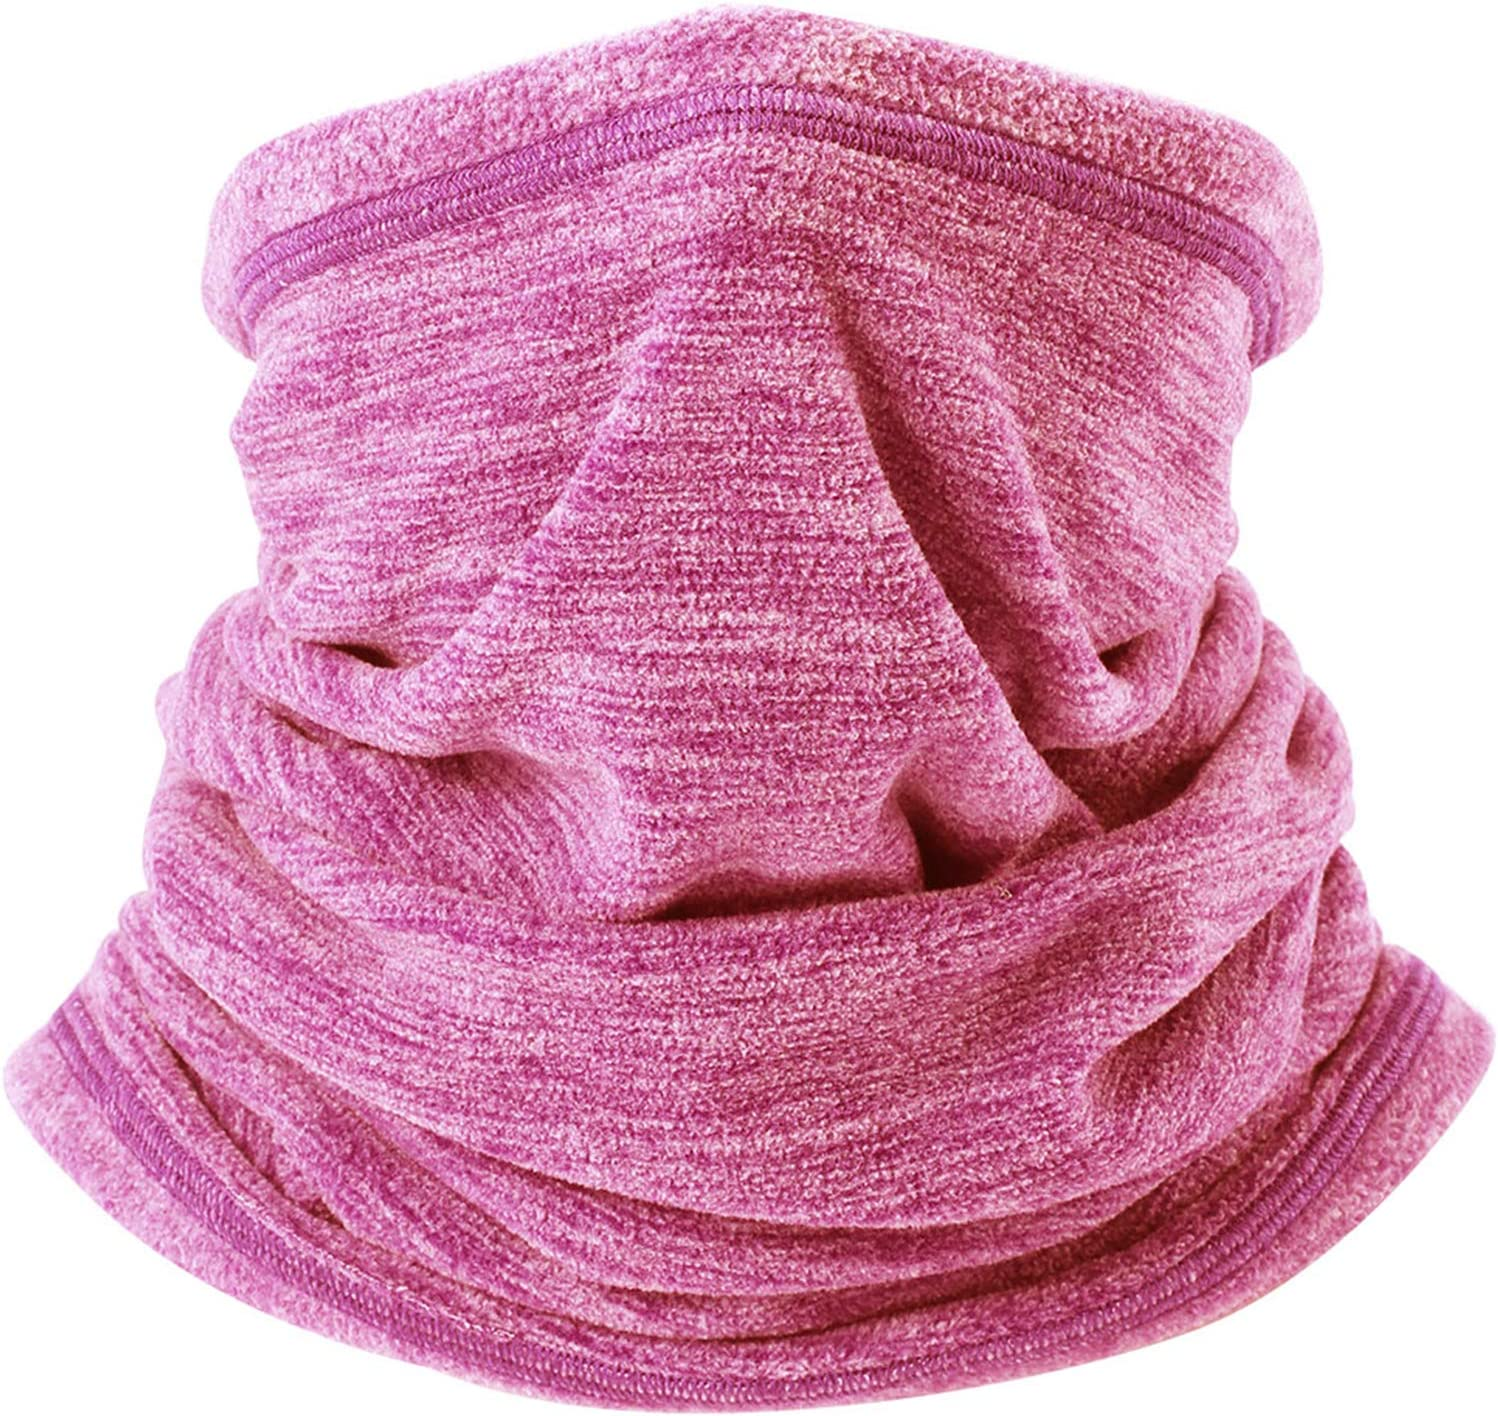 YOSUNPING Soft Fleece Neck Warmer Gaiter Face Mask Thermal Cover for Cold Weather